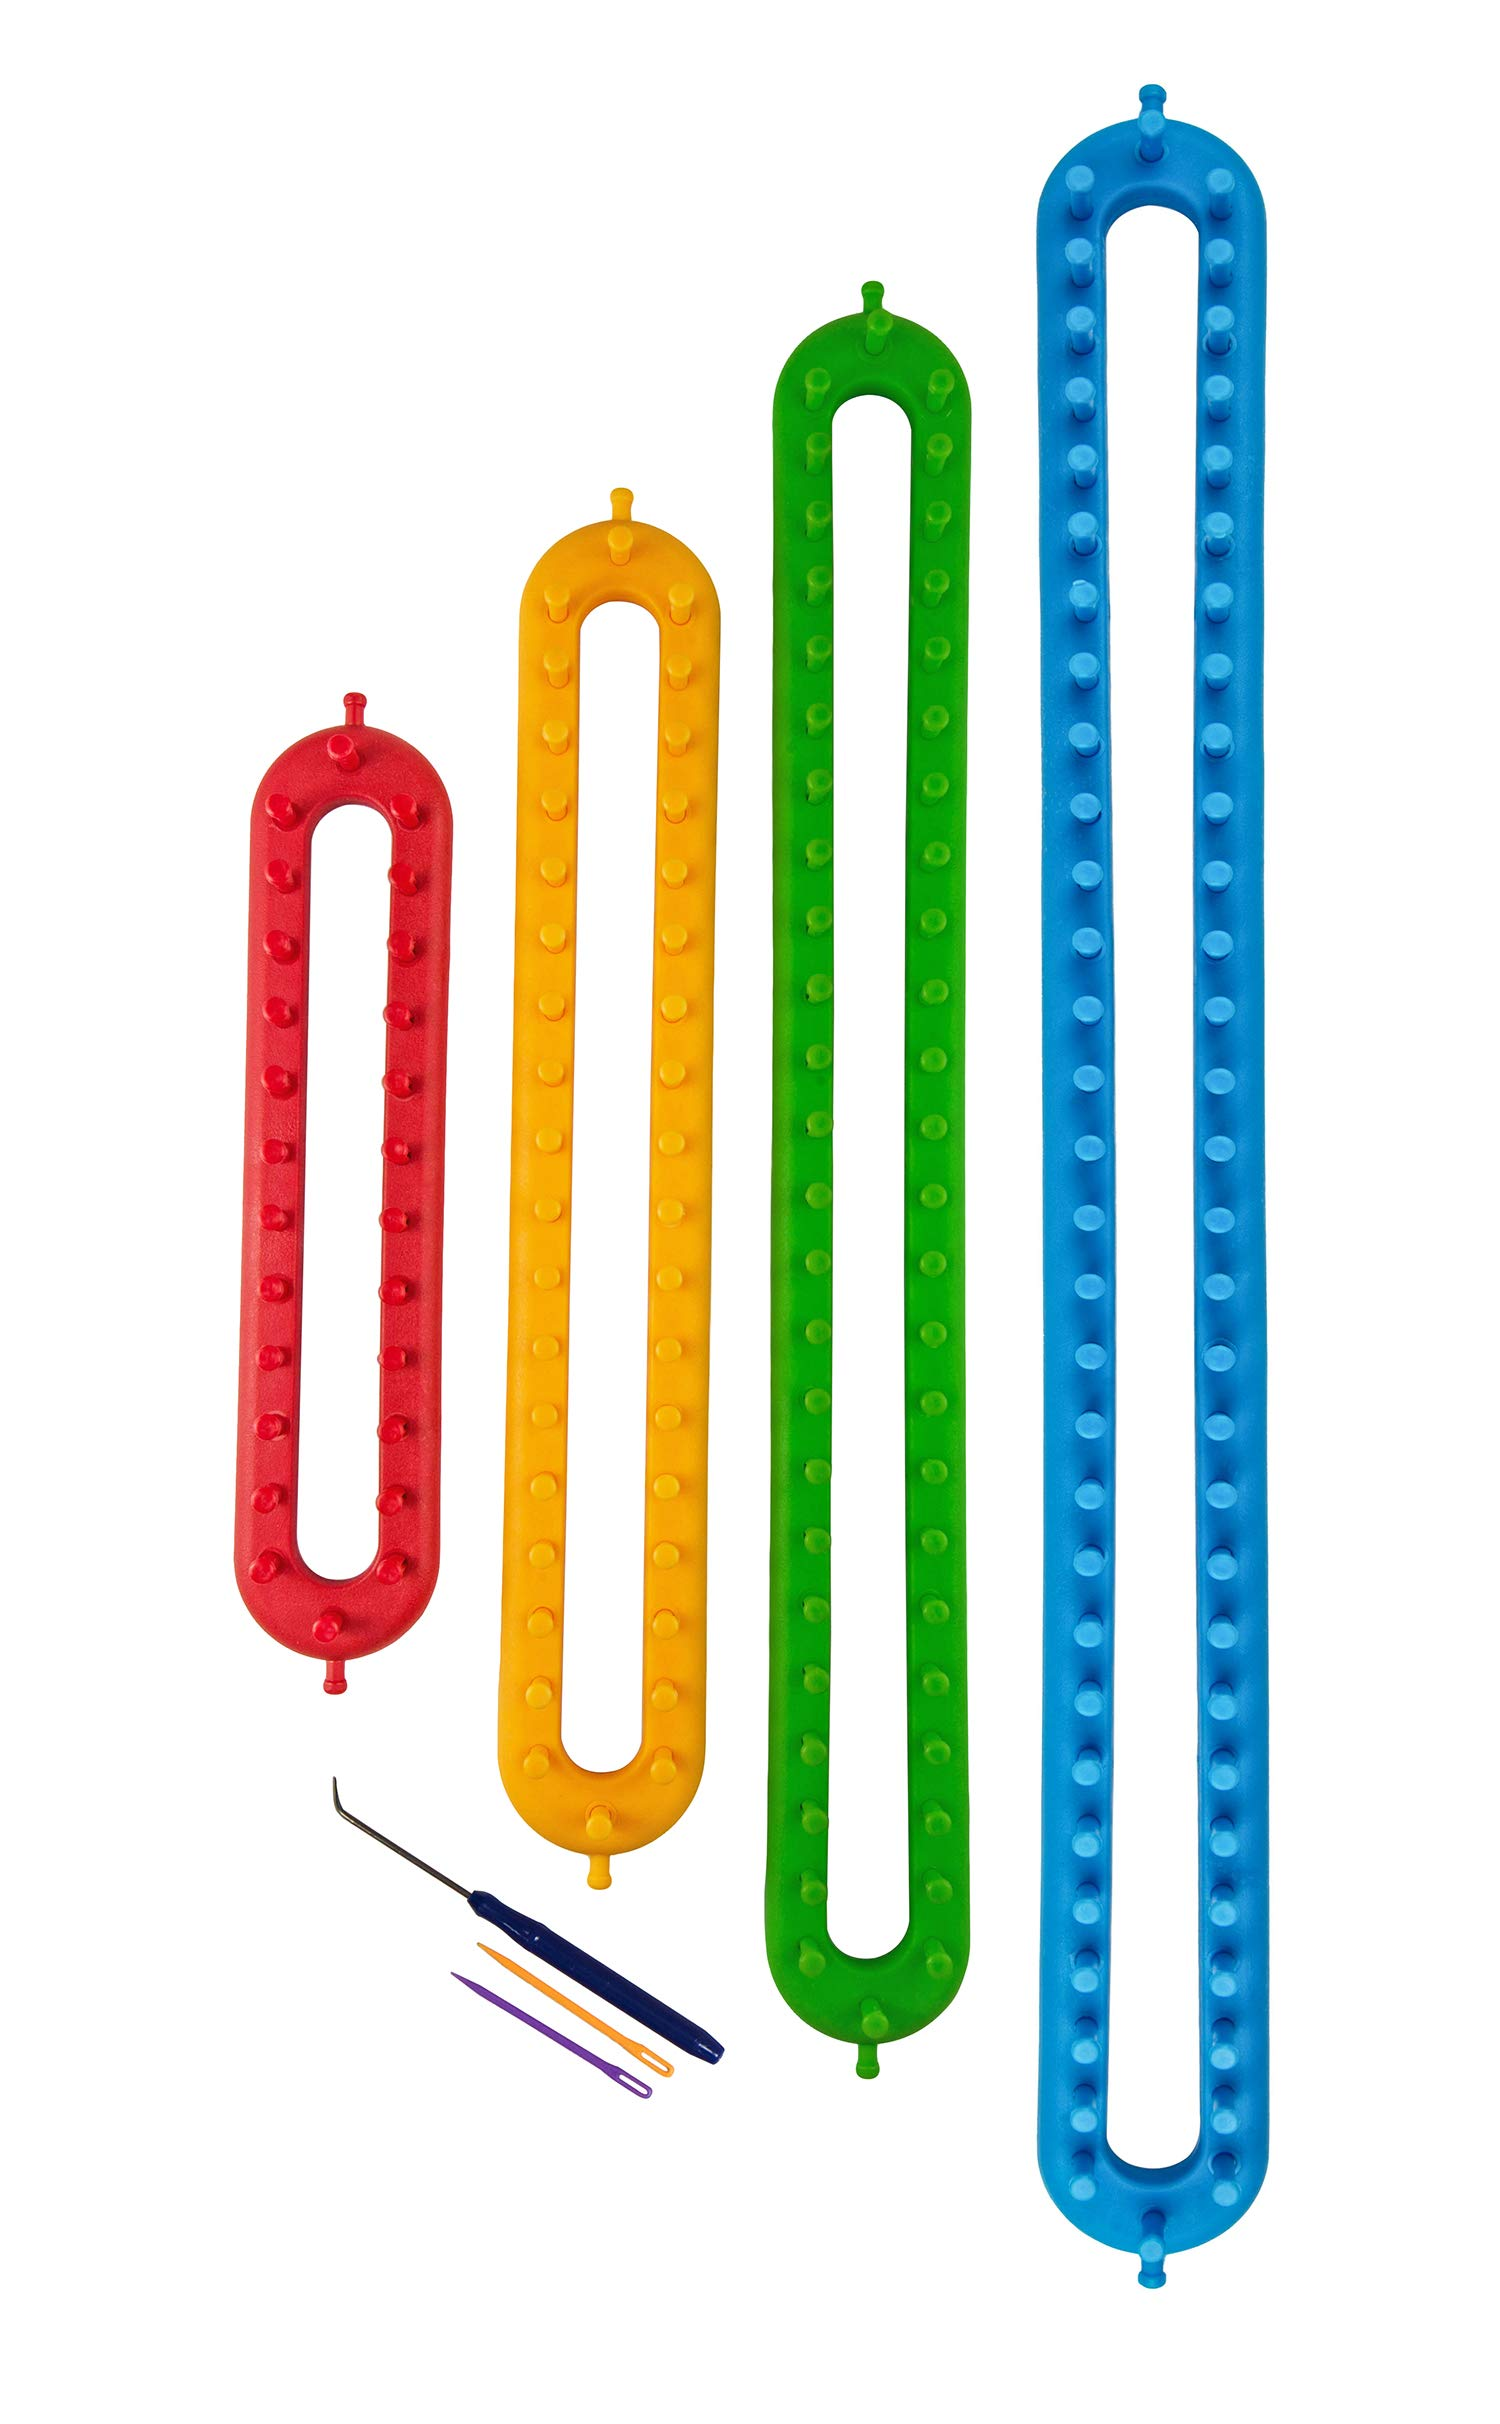 Long and Round Knitting Loom Set Craft Kit with Hook Needle,Gift Pompom Maker by Frola (Image #3)